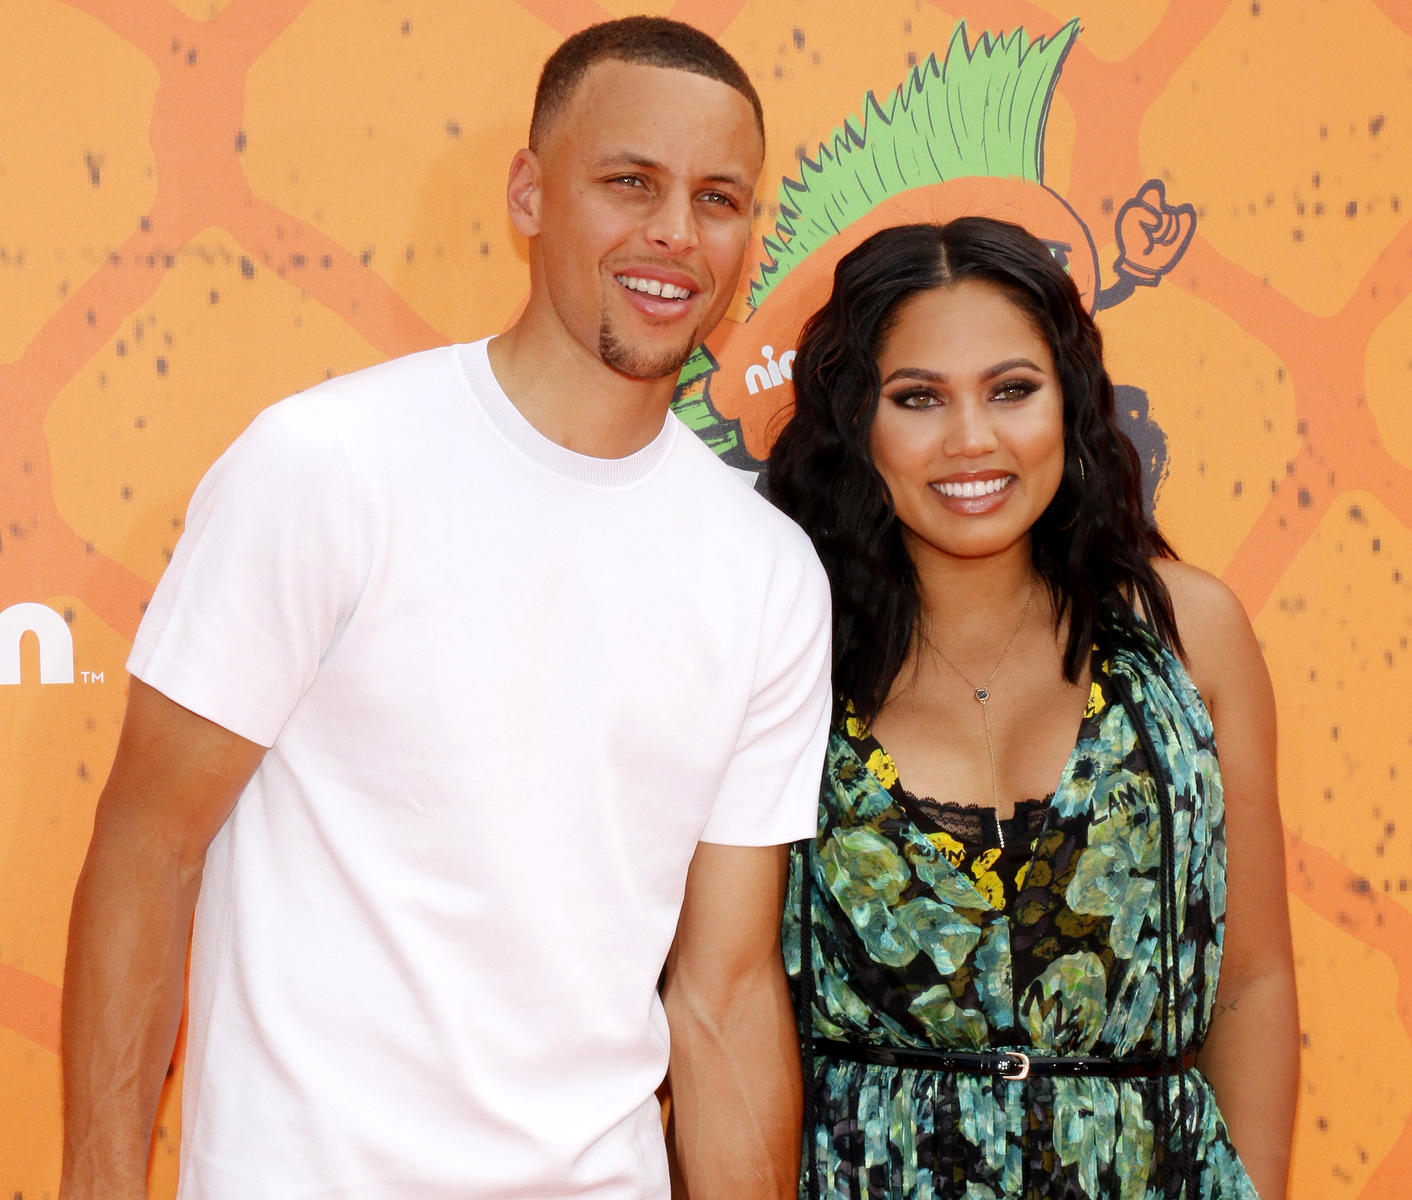 Steph Curry and Ayesha Curry Orange Carpet